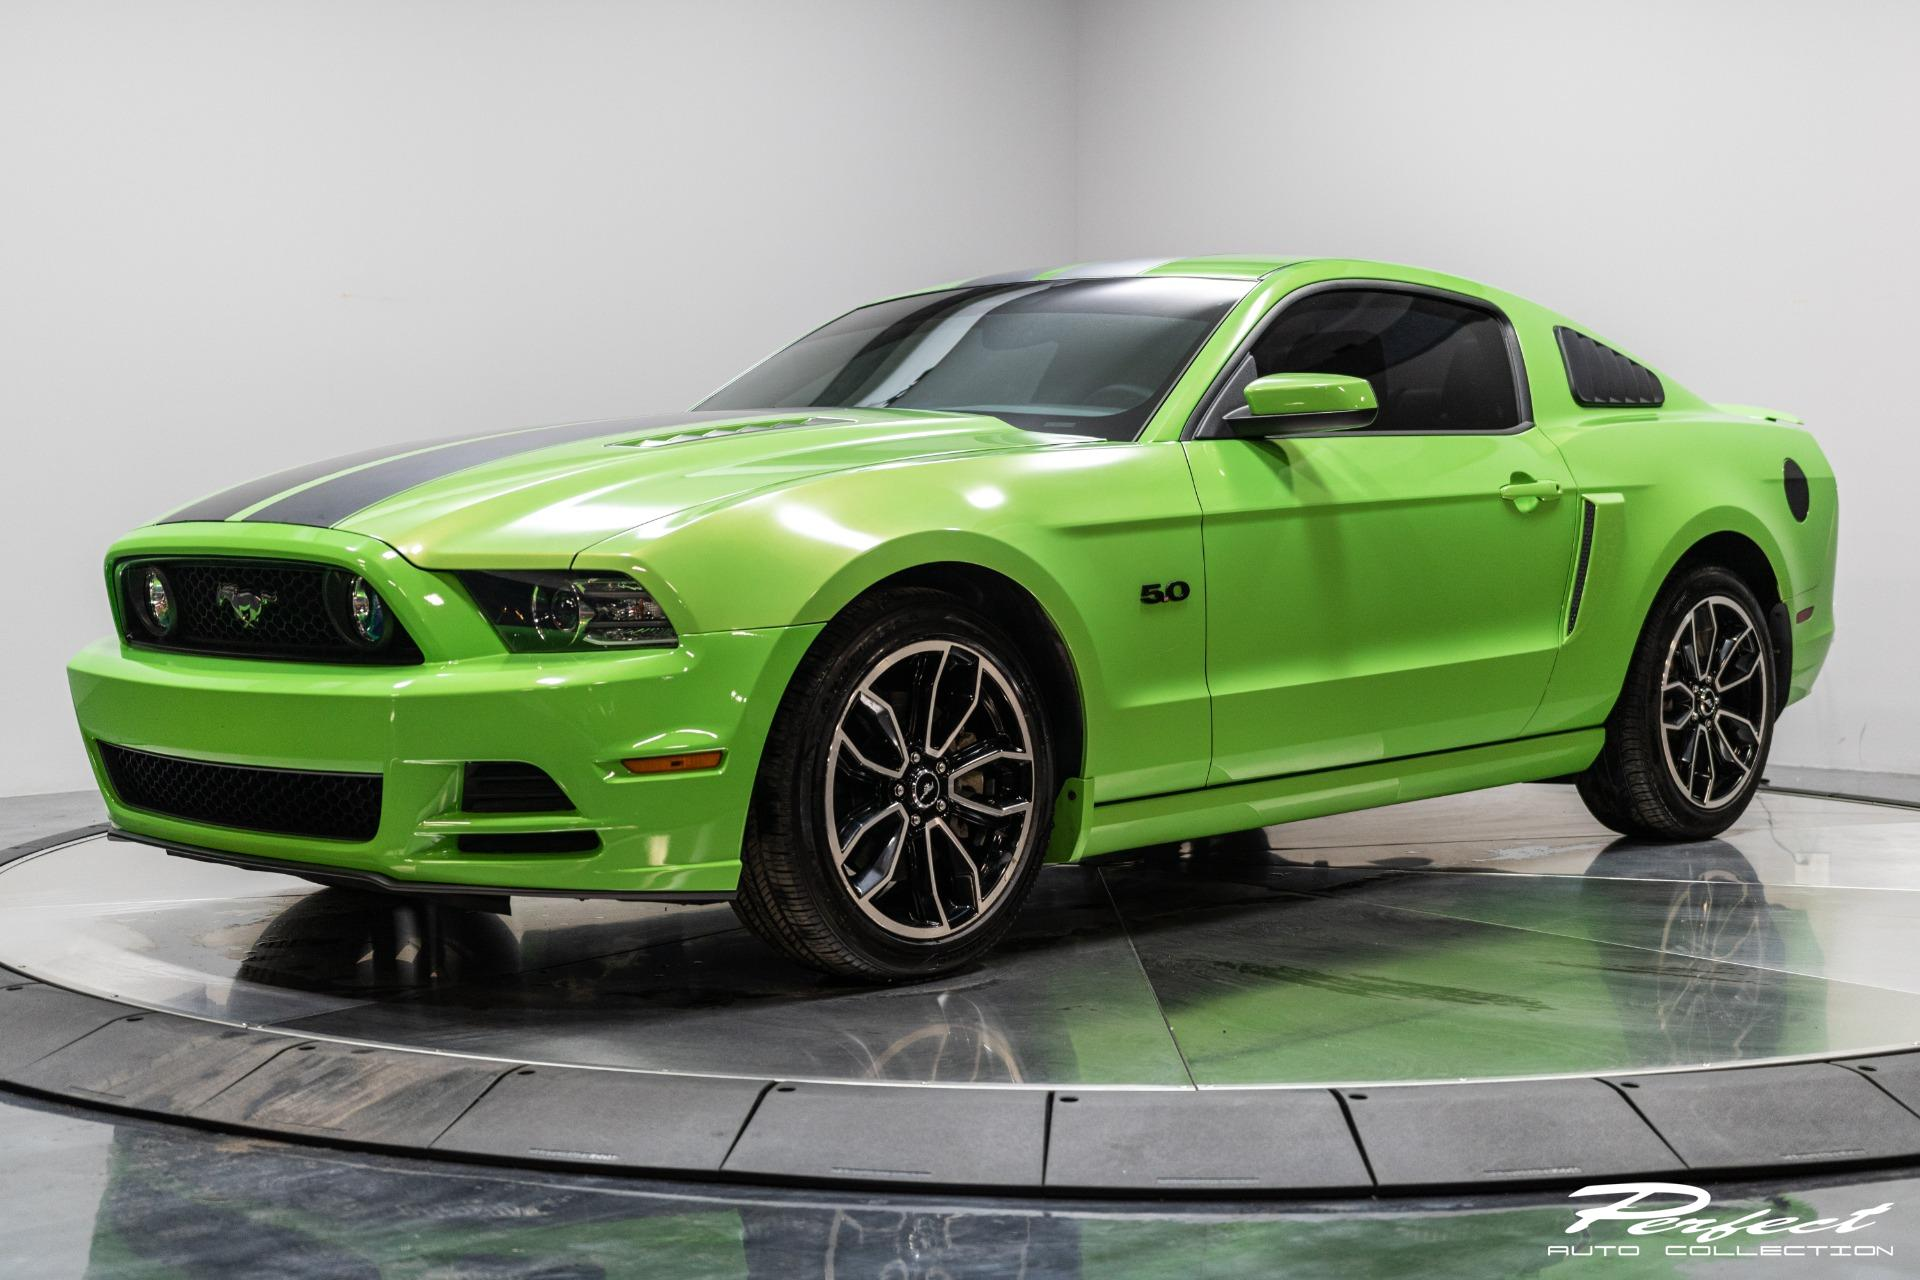 Used 2014 Ford Mustang GT Premium for sale Sold at Perfect Auto Collection in Akron OH 44310 1